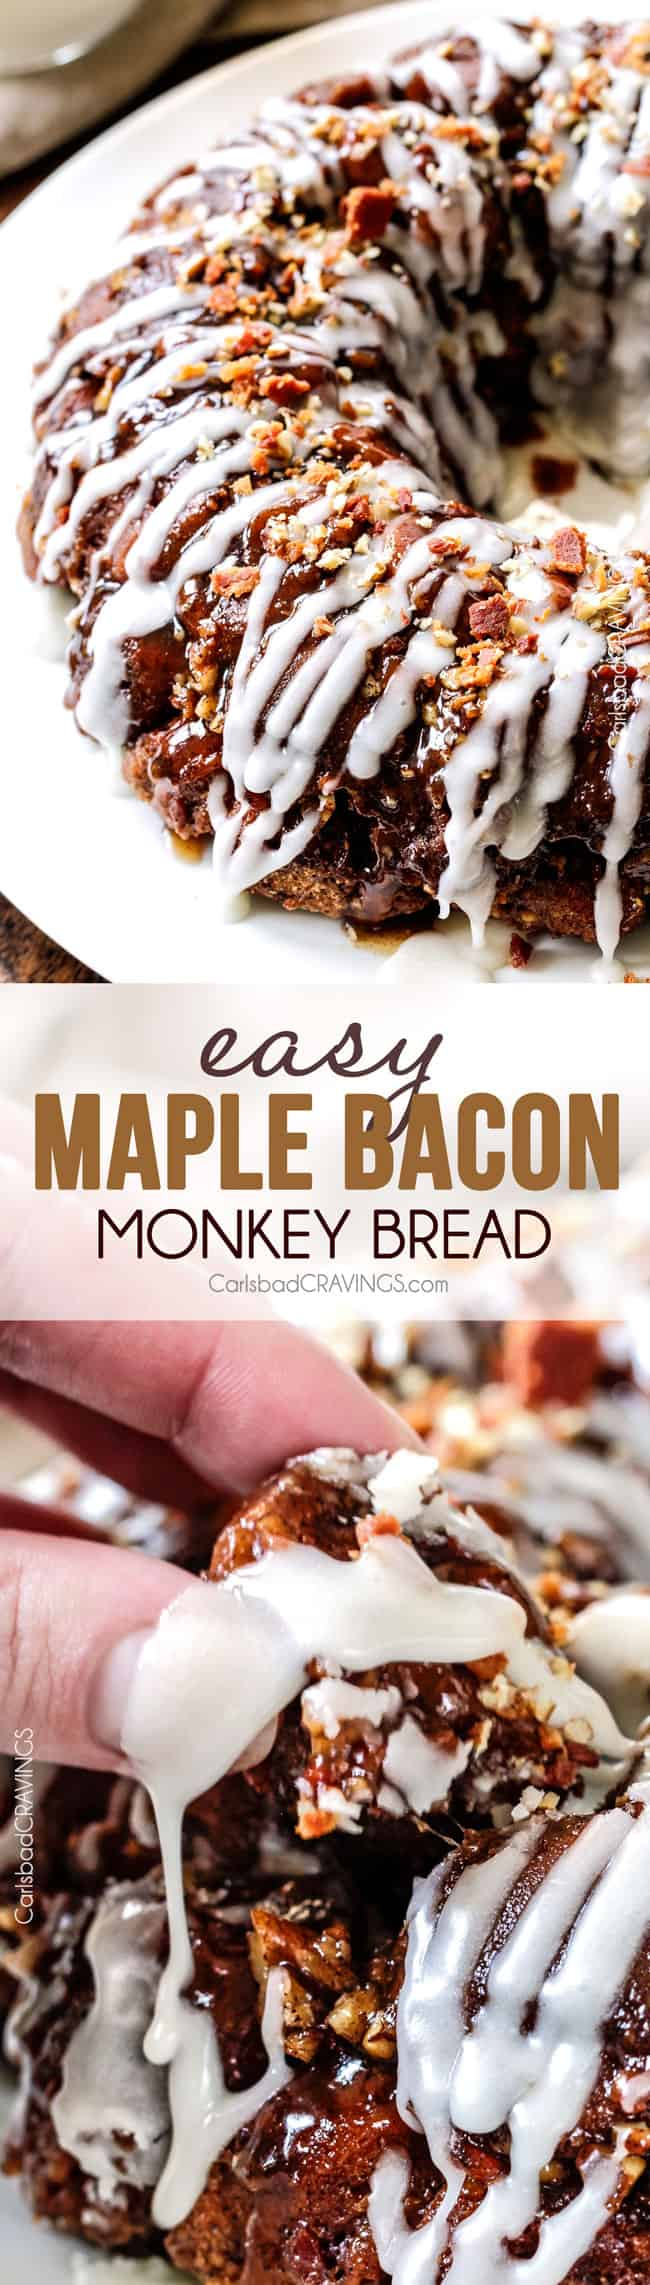 Maple Bacon Cinnamon Roll Monkey Bread made easy with refrigerated cinnamon rolls and made irresistible with maple crispy crumbled bacon, pecans and a maple caramel topping. The perfect special occasion breakfast, brunch or dessert!